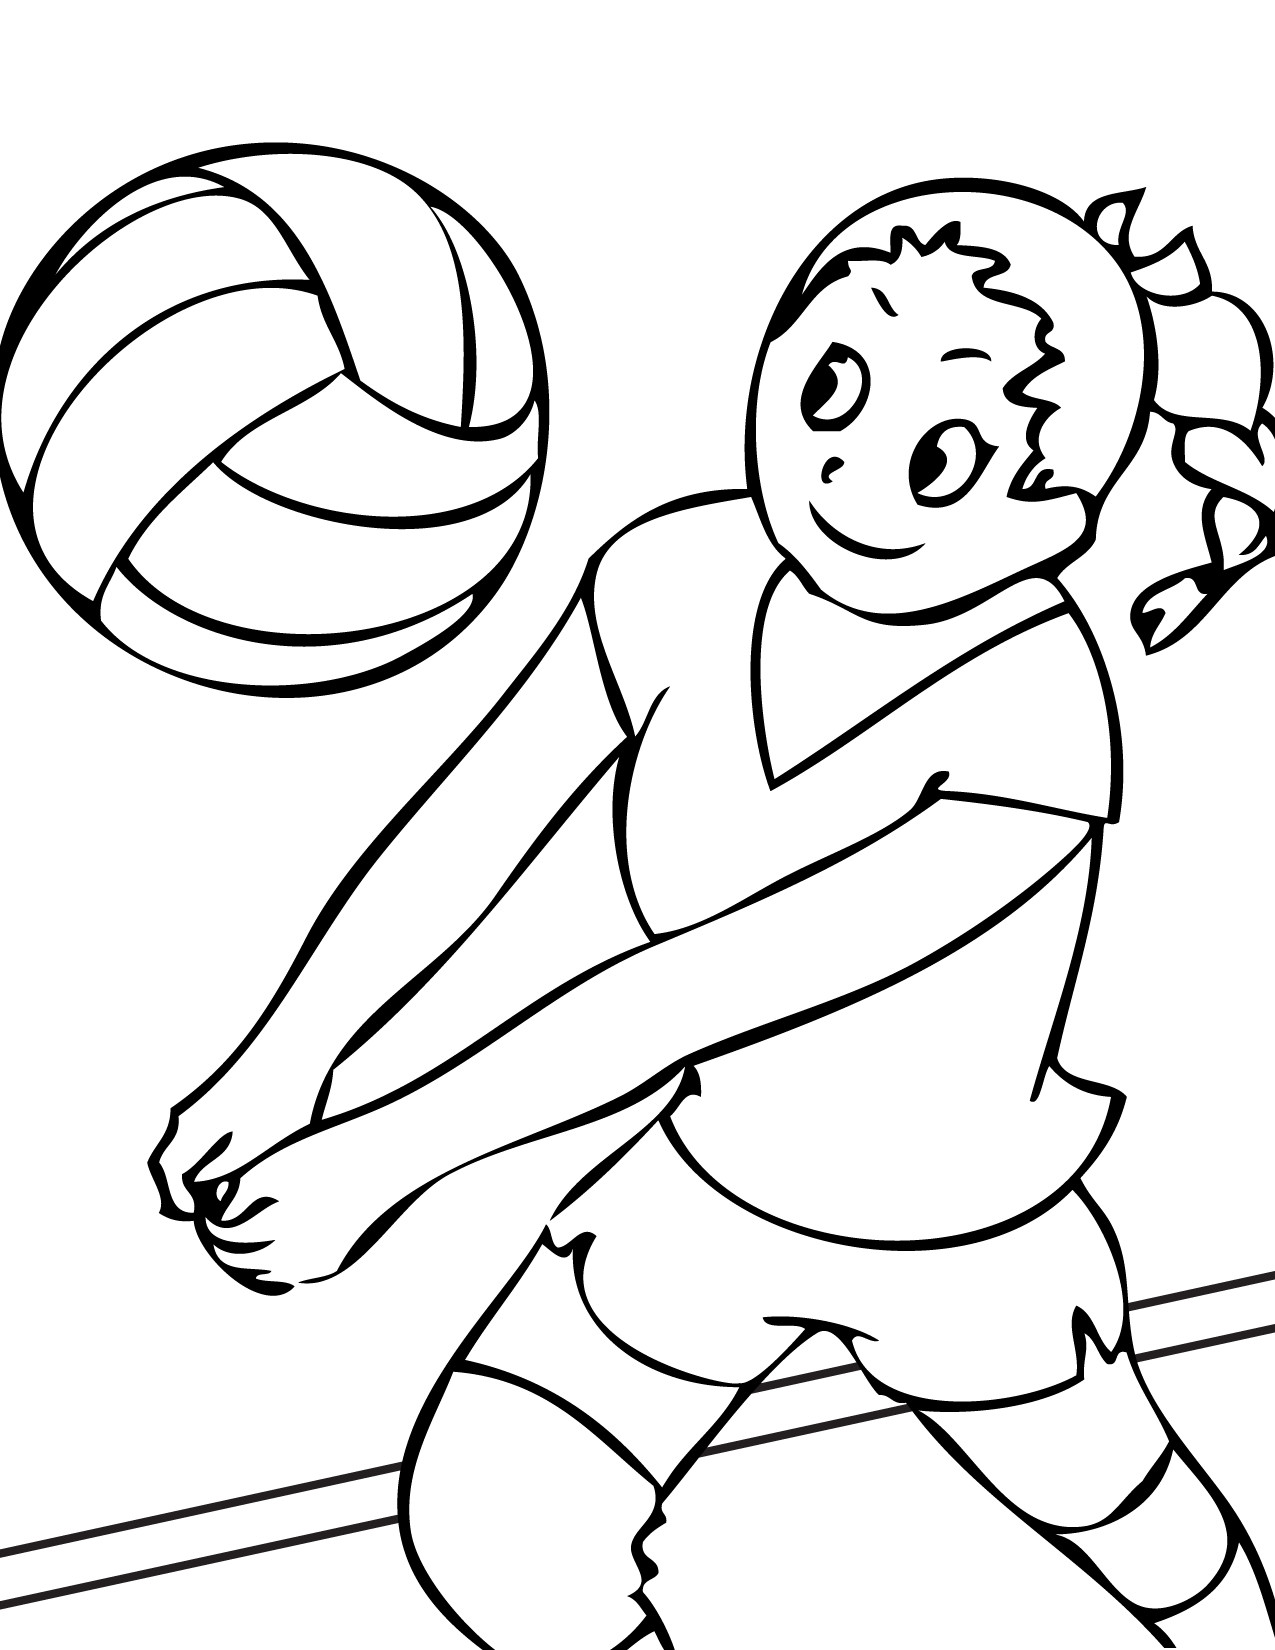 Best ideas about Sports Coloring Sheets For Kids . Save or Pin Free Printable Volleyball Coloring Pages For Kids Now.